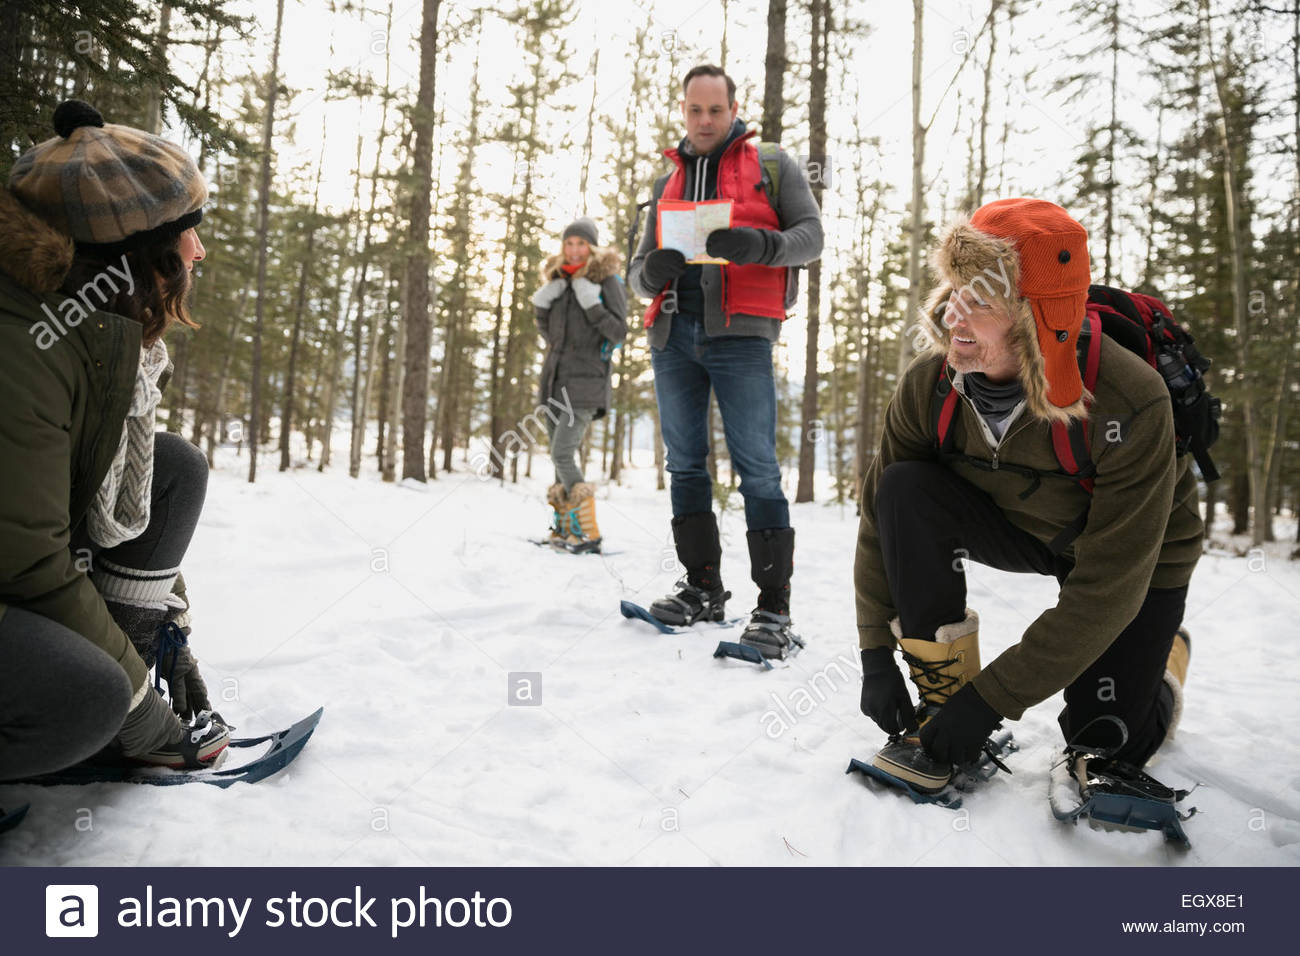 Friends putting on snowshoes in snowy woods - Stock Image